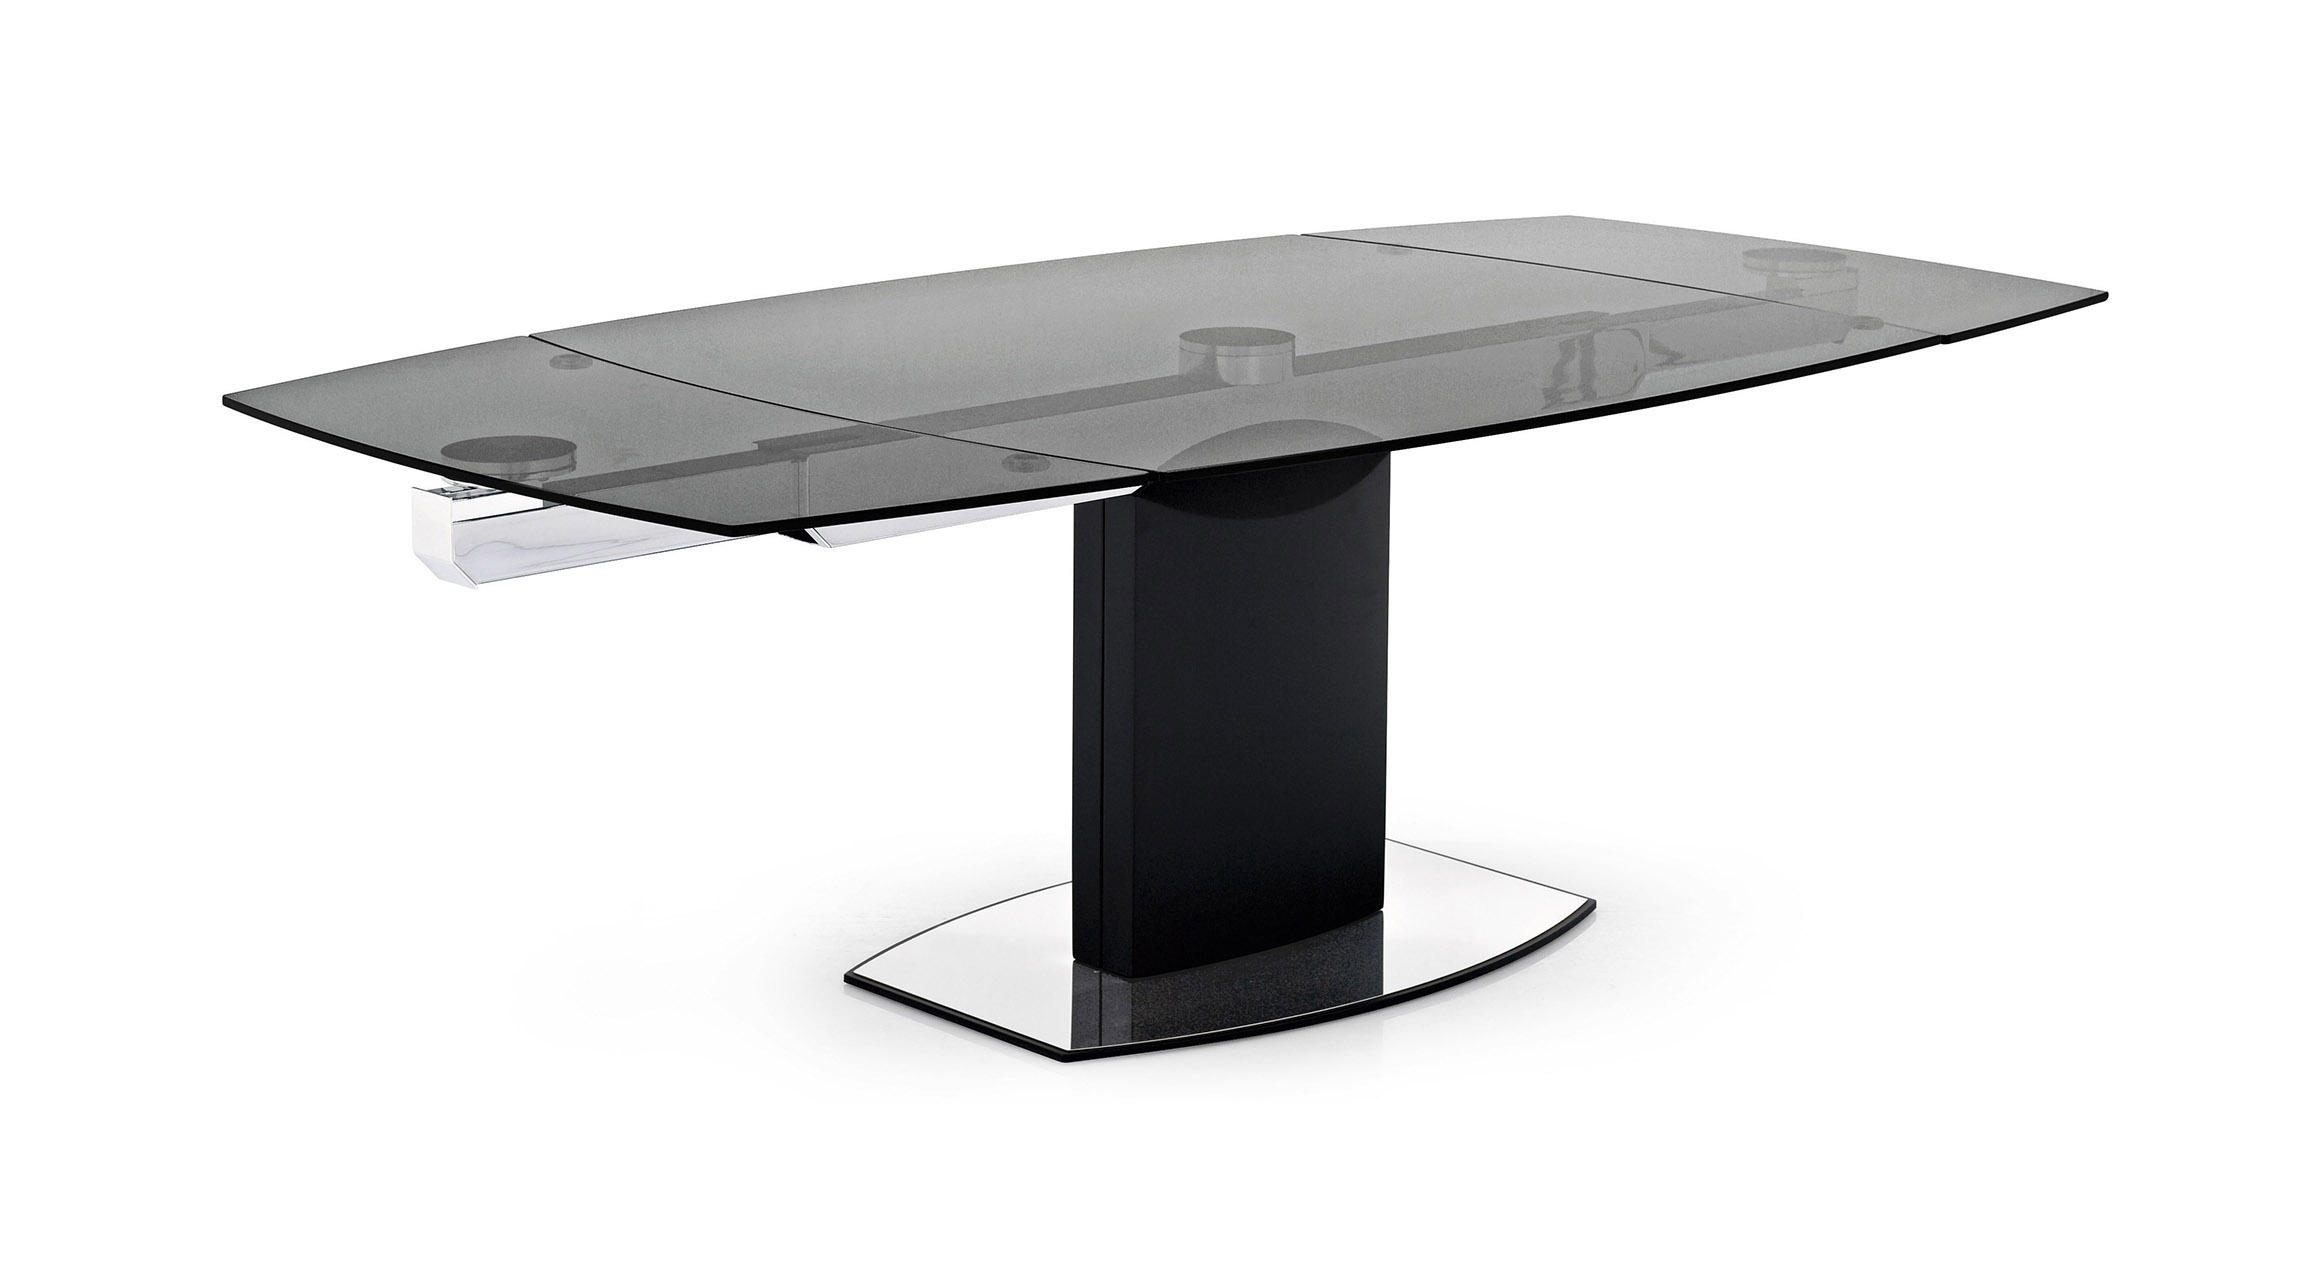 Orbital tavolo firmato pininfarina calligaris table by for Tavolo calligaris